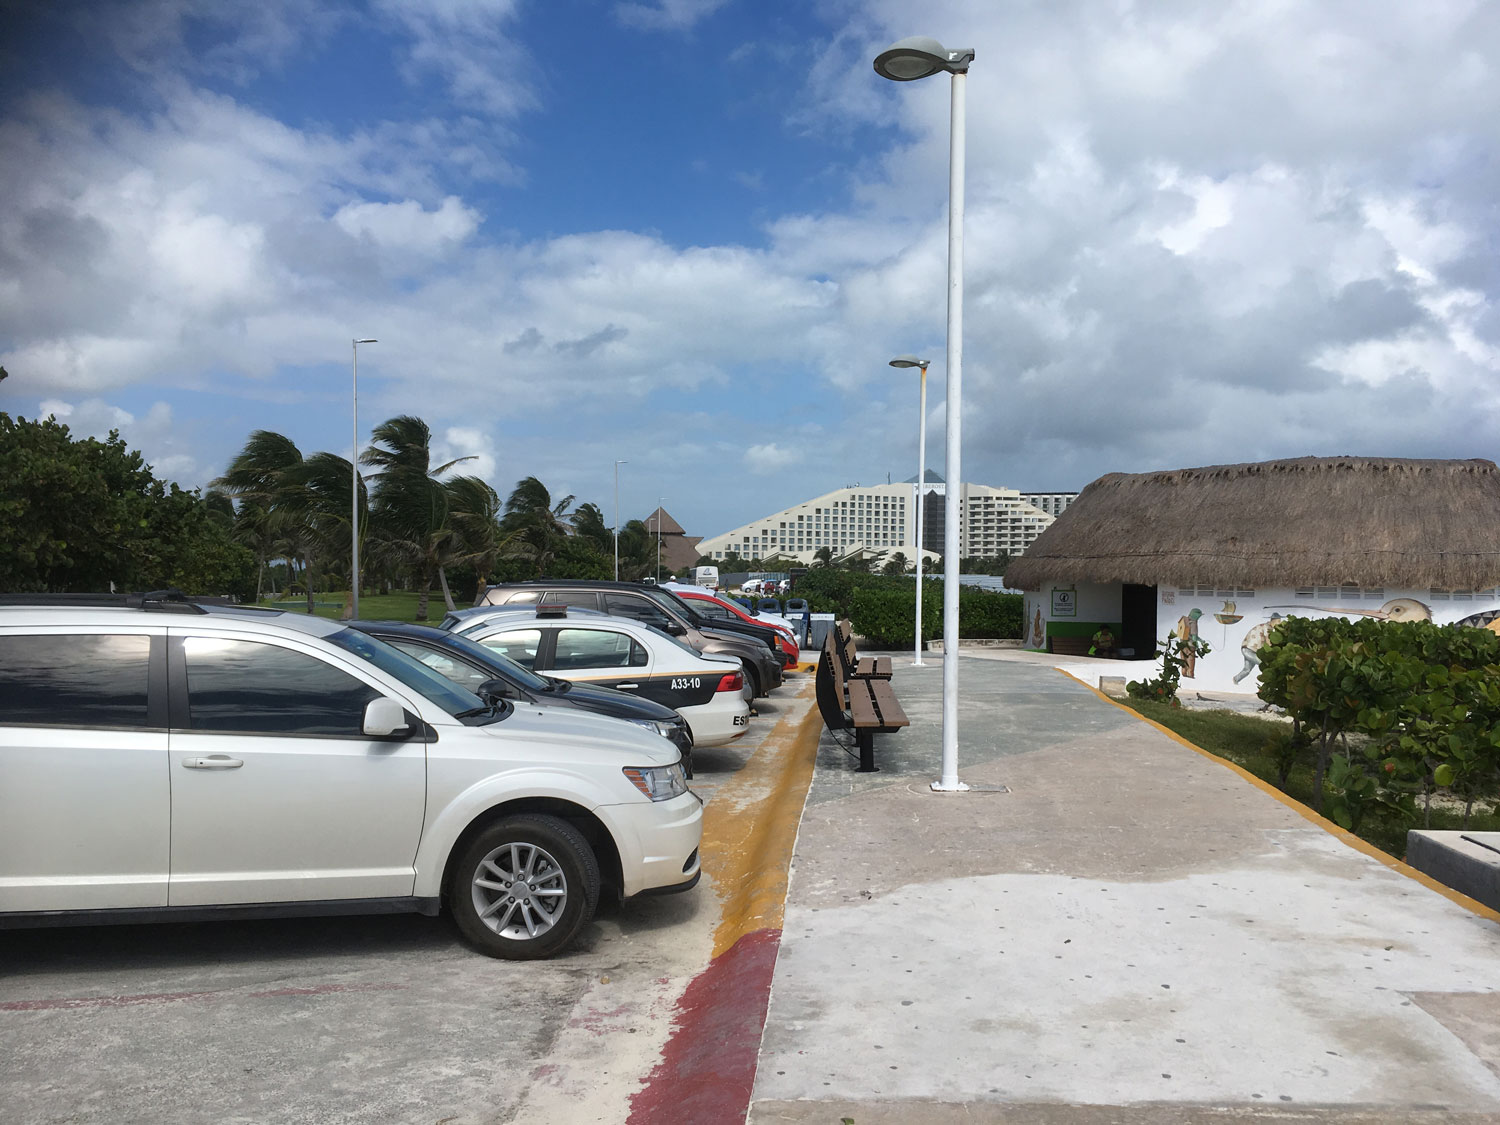 The car park for the beach is always full but attendants will help you.